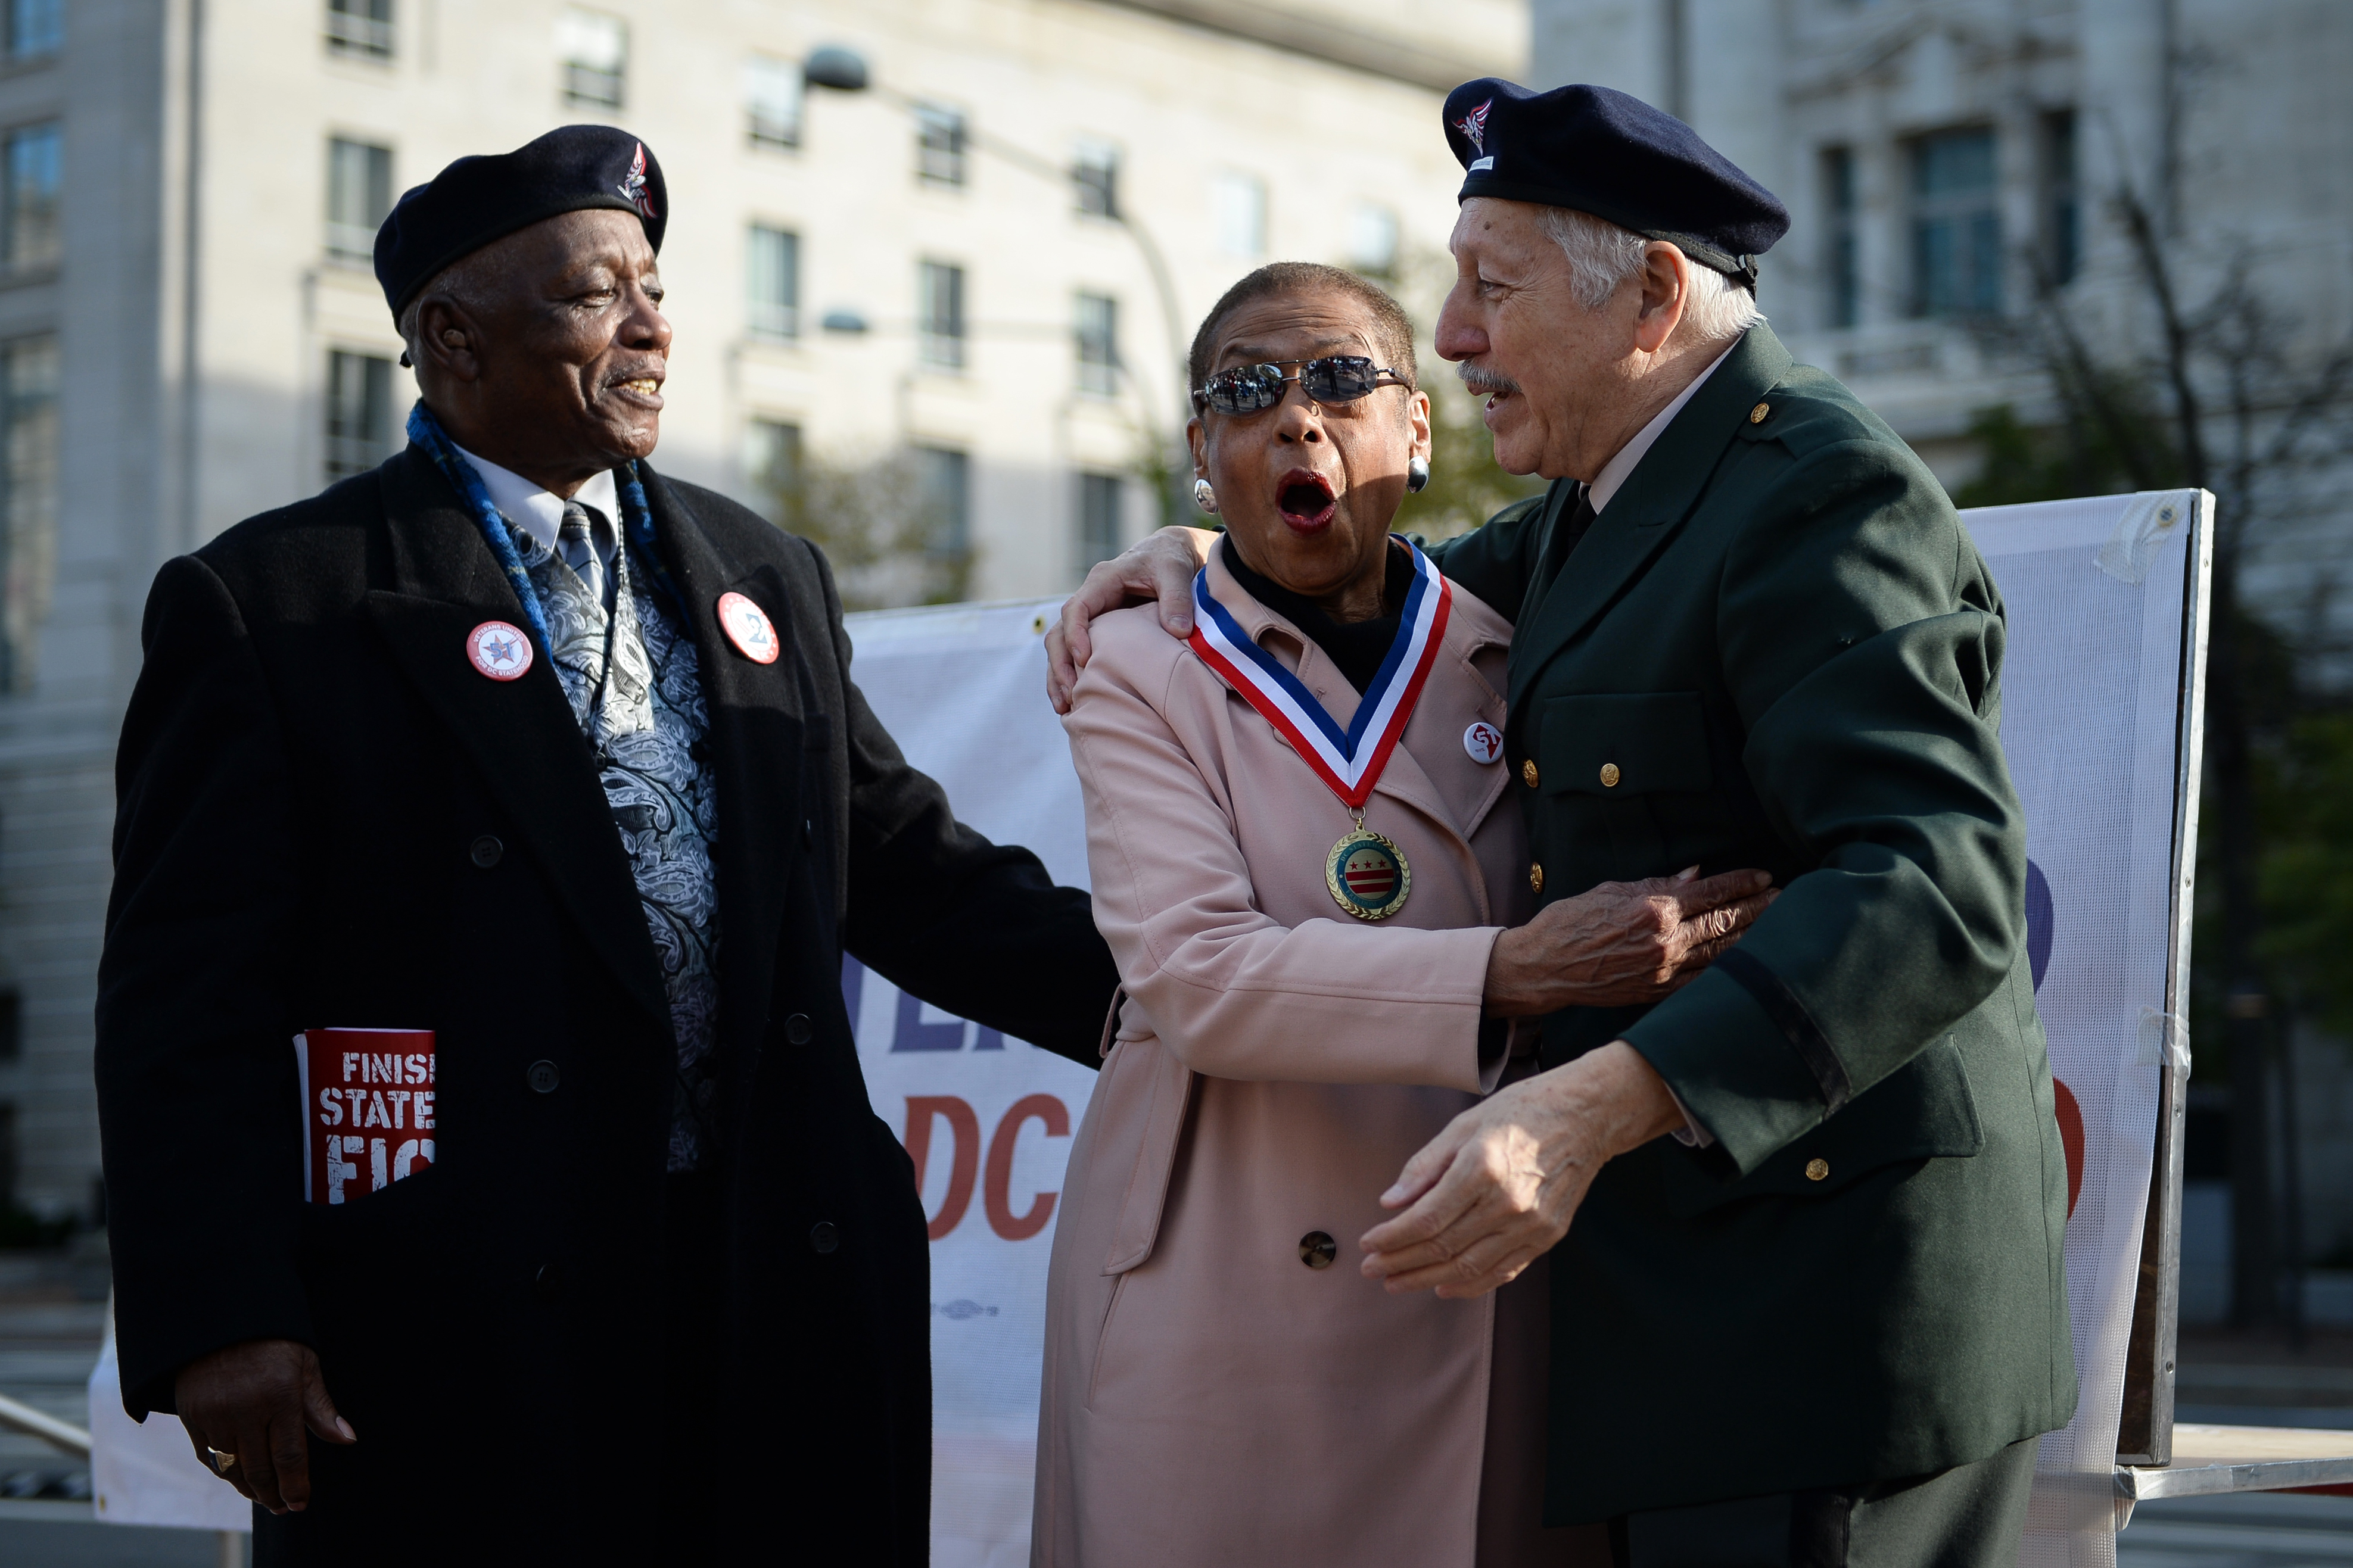 "UNITED STATES - NOVEMBER 11: Del. Eleanor Holmes Norton, D-D.C., center, receives the ""DC Statehood Freedom Award"" for her work fighting for D.C. equality at a rally sponsored by Veterans for D.C. Statehood on Veterans Day at Freedom Plaza on Monday Nov. 11, 2019. (Photo by Caroline Brehman/CQ Roll Call)"